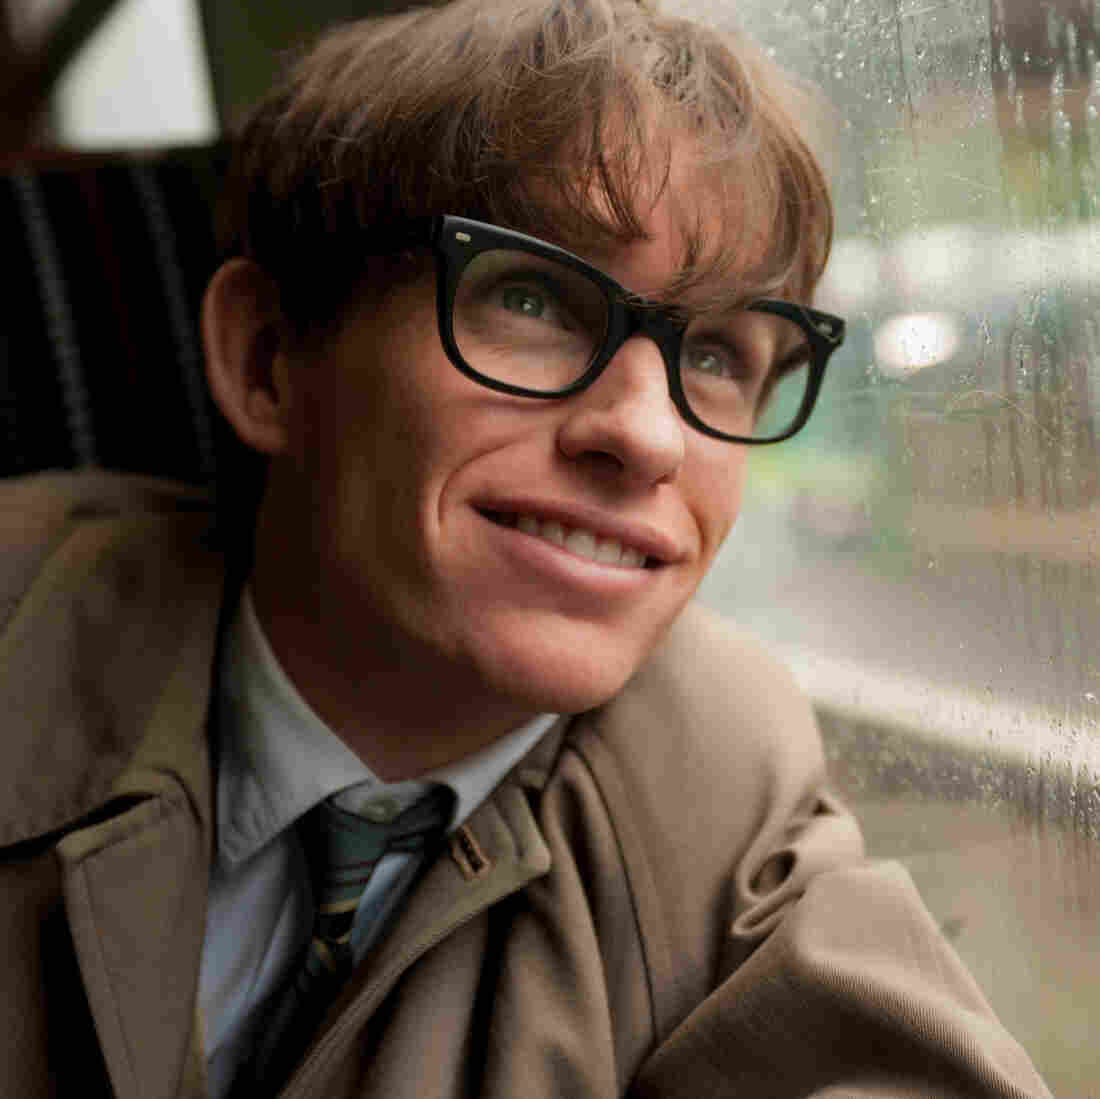 New Stephen Hawking Biopic Explores Love, Not Science